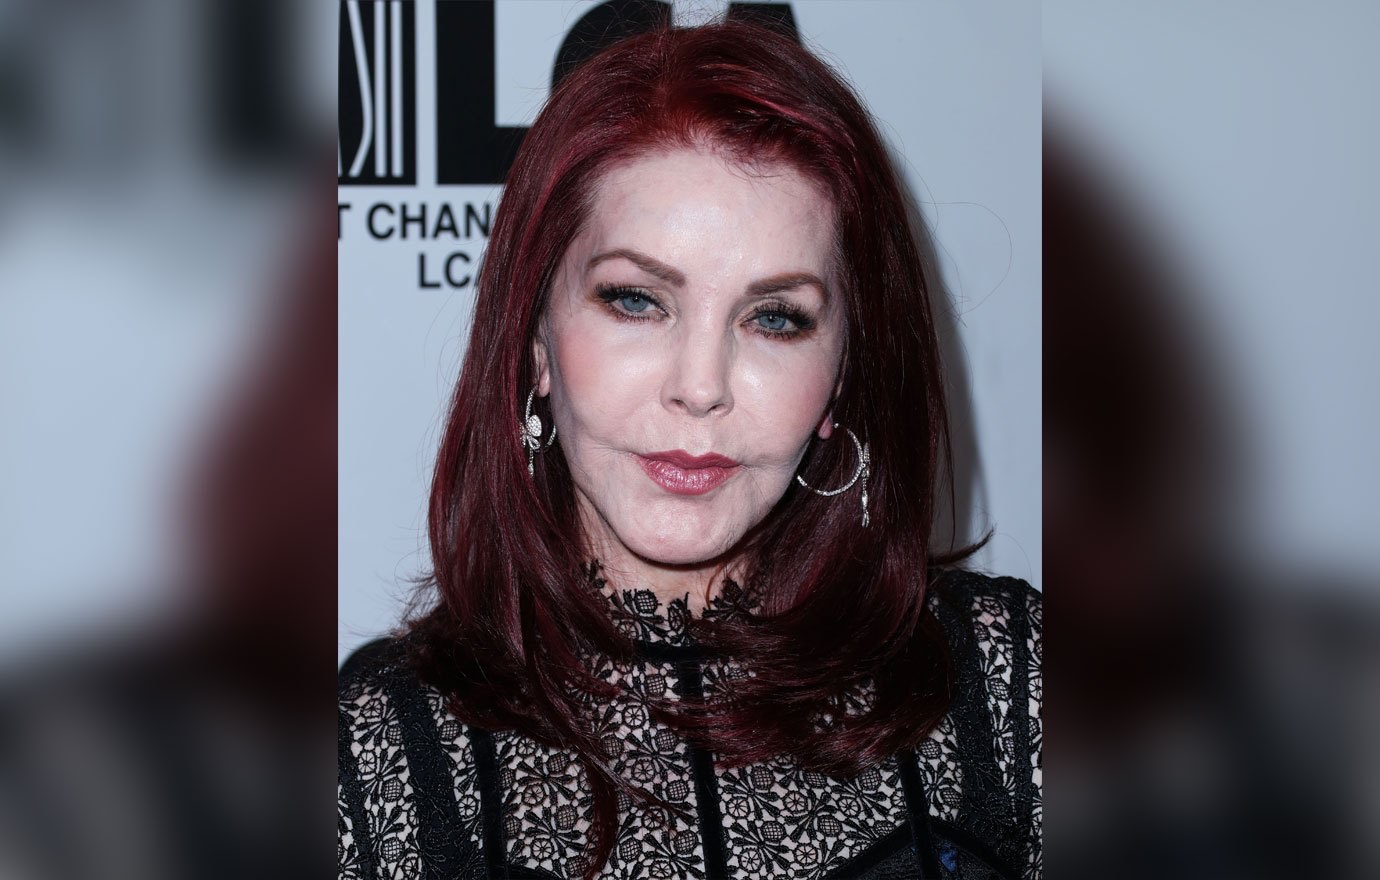 Priscilla Presley Attends Animal Charity Event After Her Horse